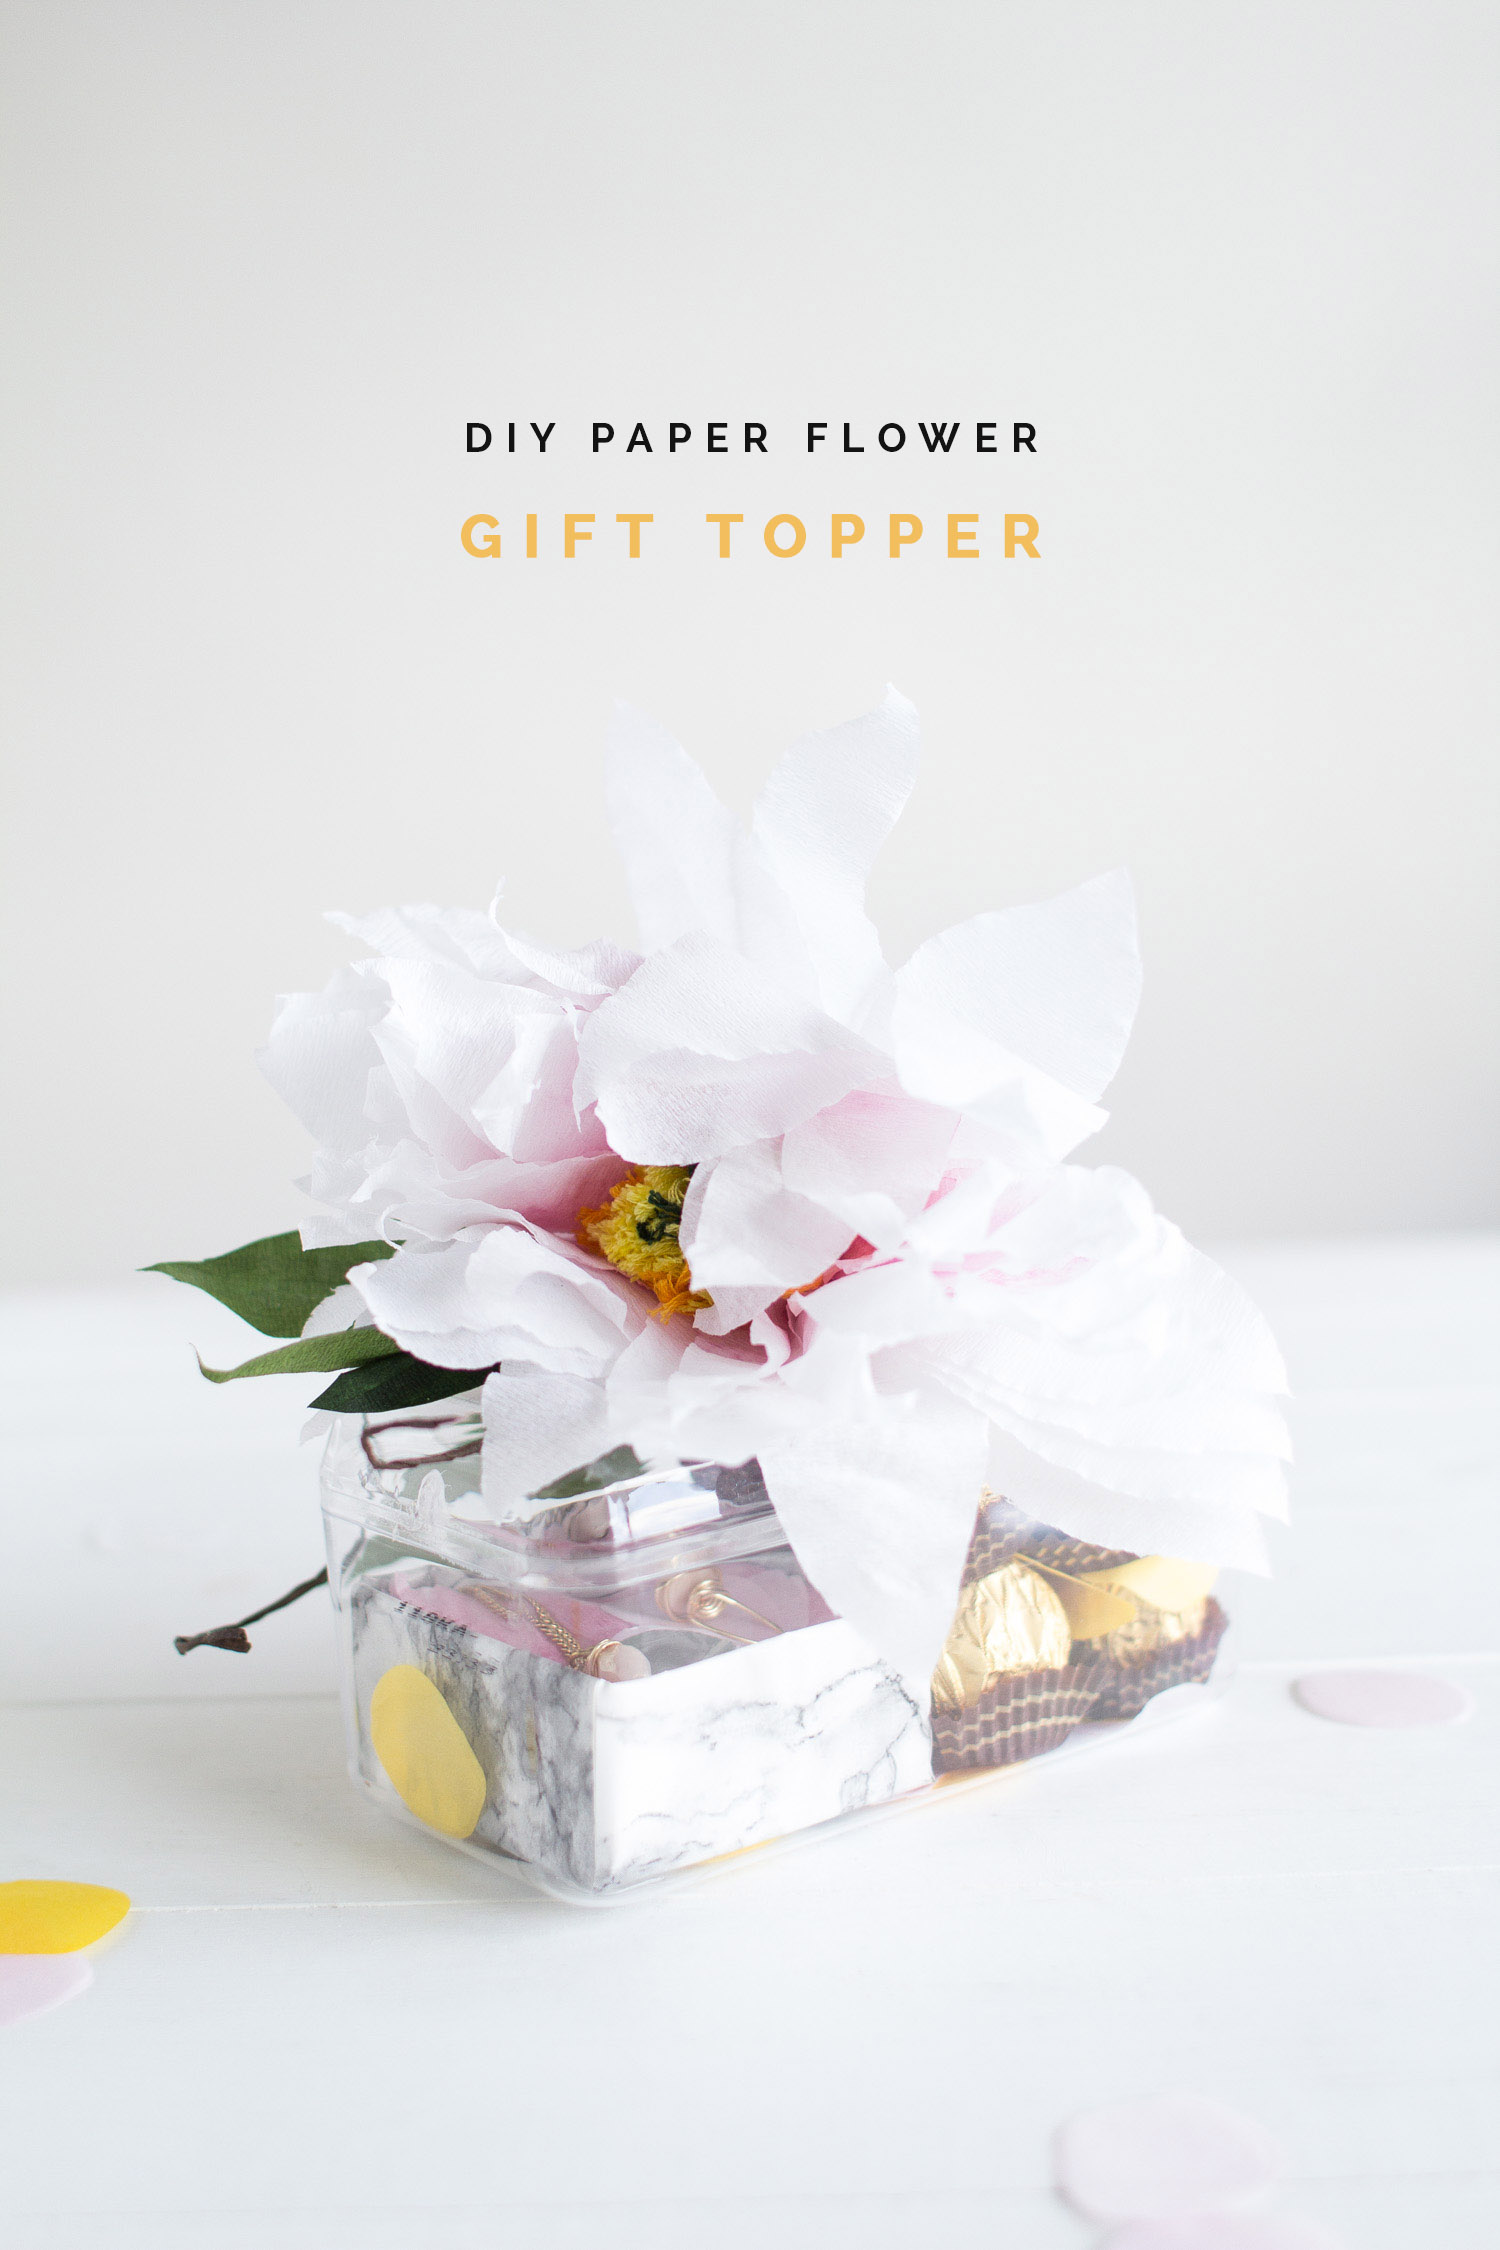 DIY Paper Flower Gift Topper | Fall For DIY